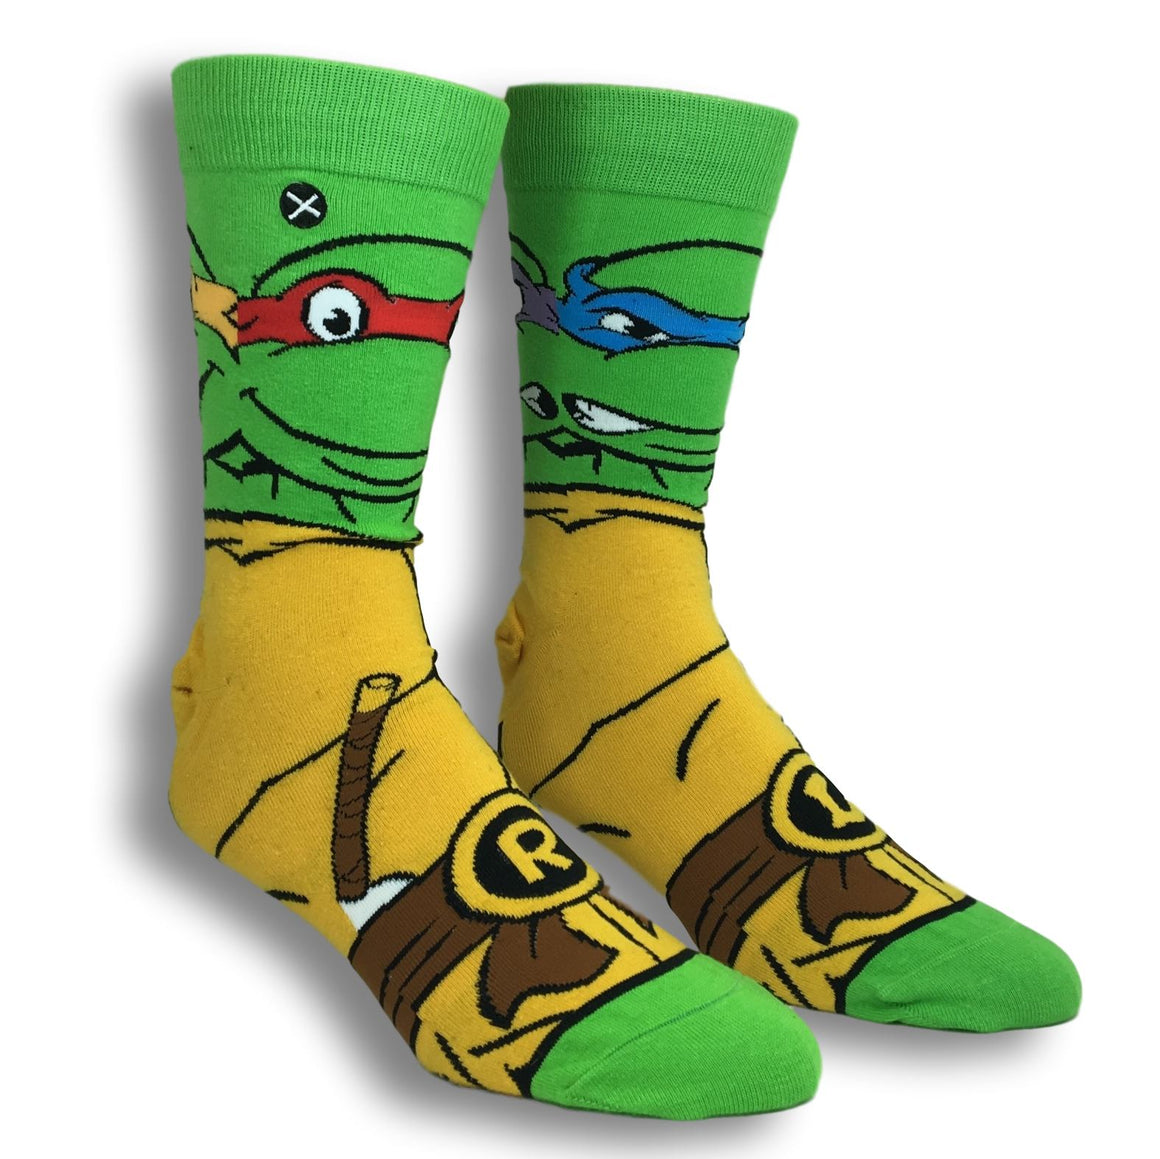 TMNT Ninja Turtles 360 Socks - The Sock Spot